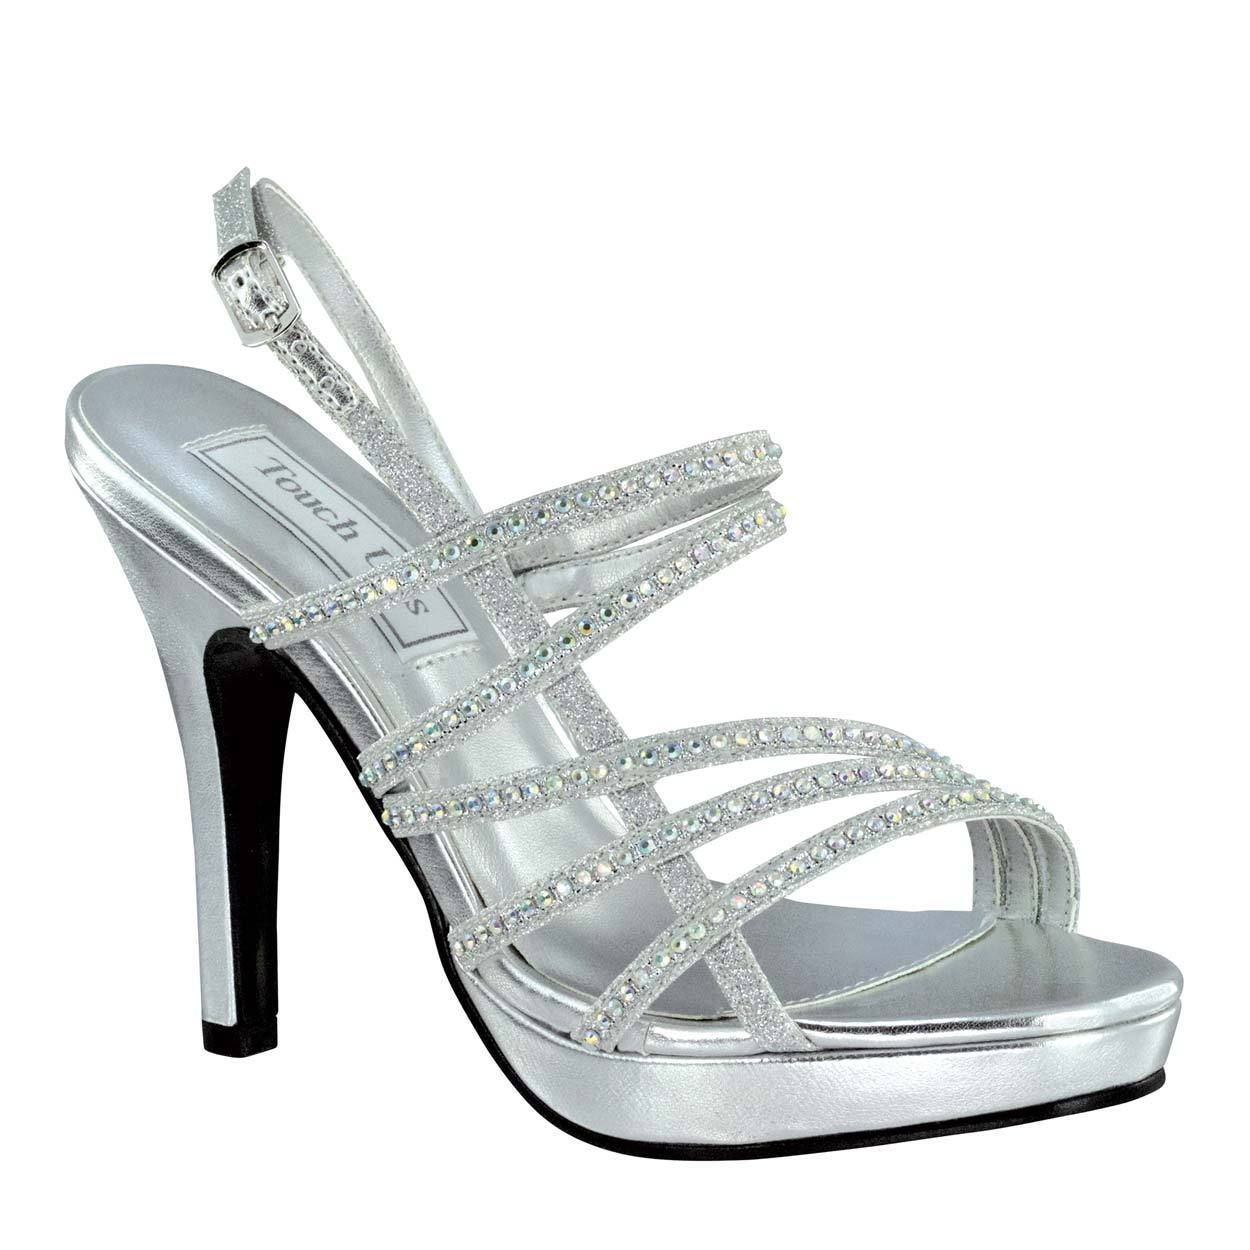 ef86397ee1d Silver Julie Rhinestone Formal Holiday Prom Woman S Strappy Platform Sandal  Shoe